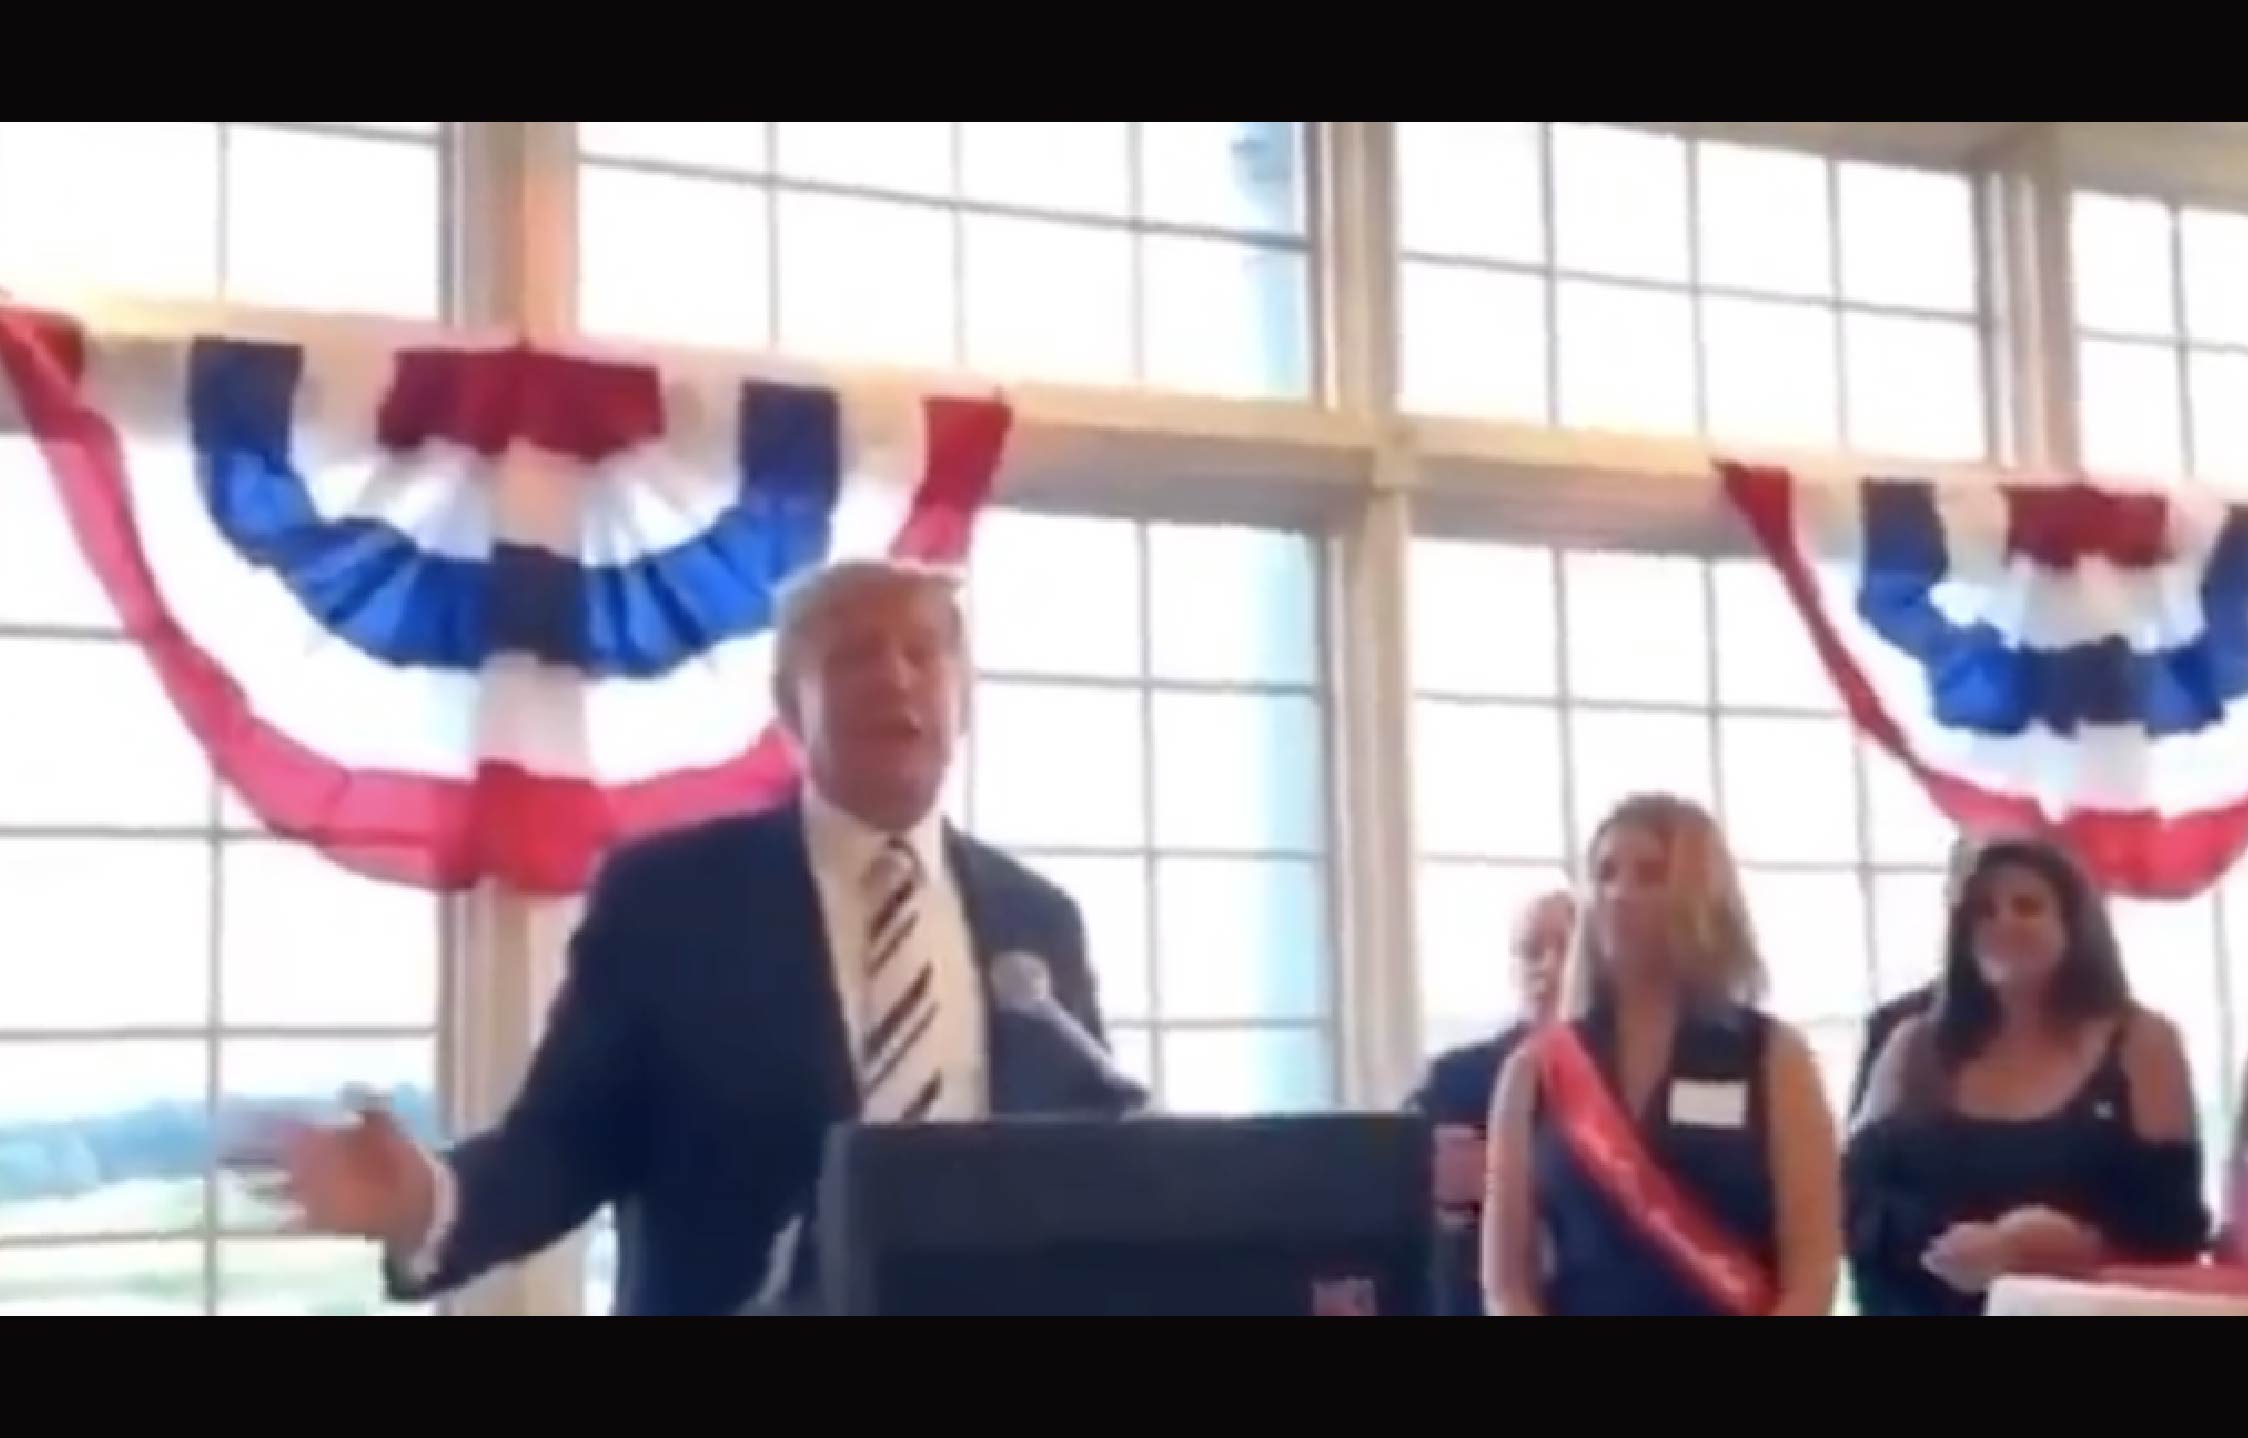 [VIDEO] Looks Like Trump Just Gave His 2024 Game Plan Away to a Lady in The Crowd